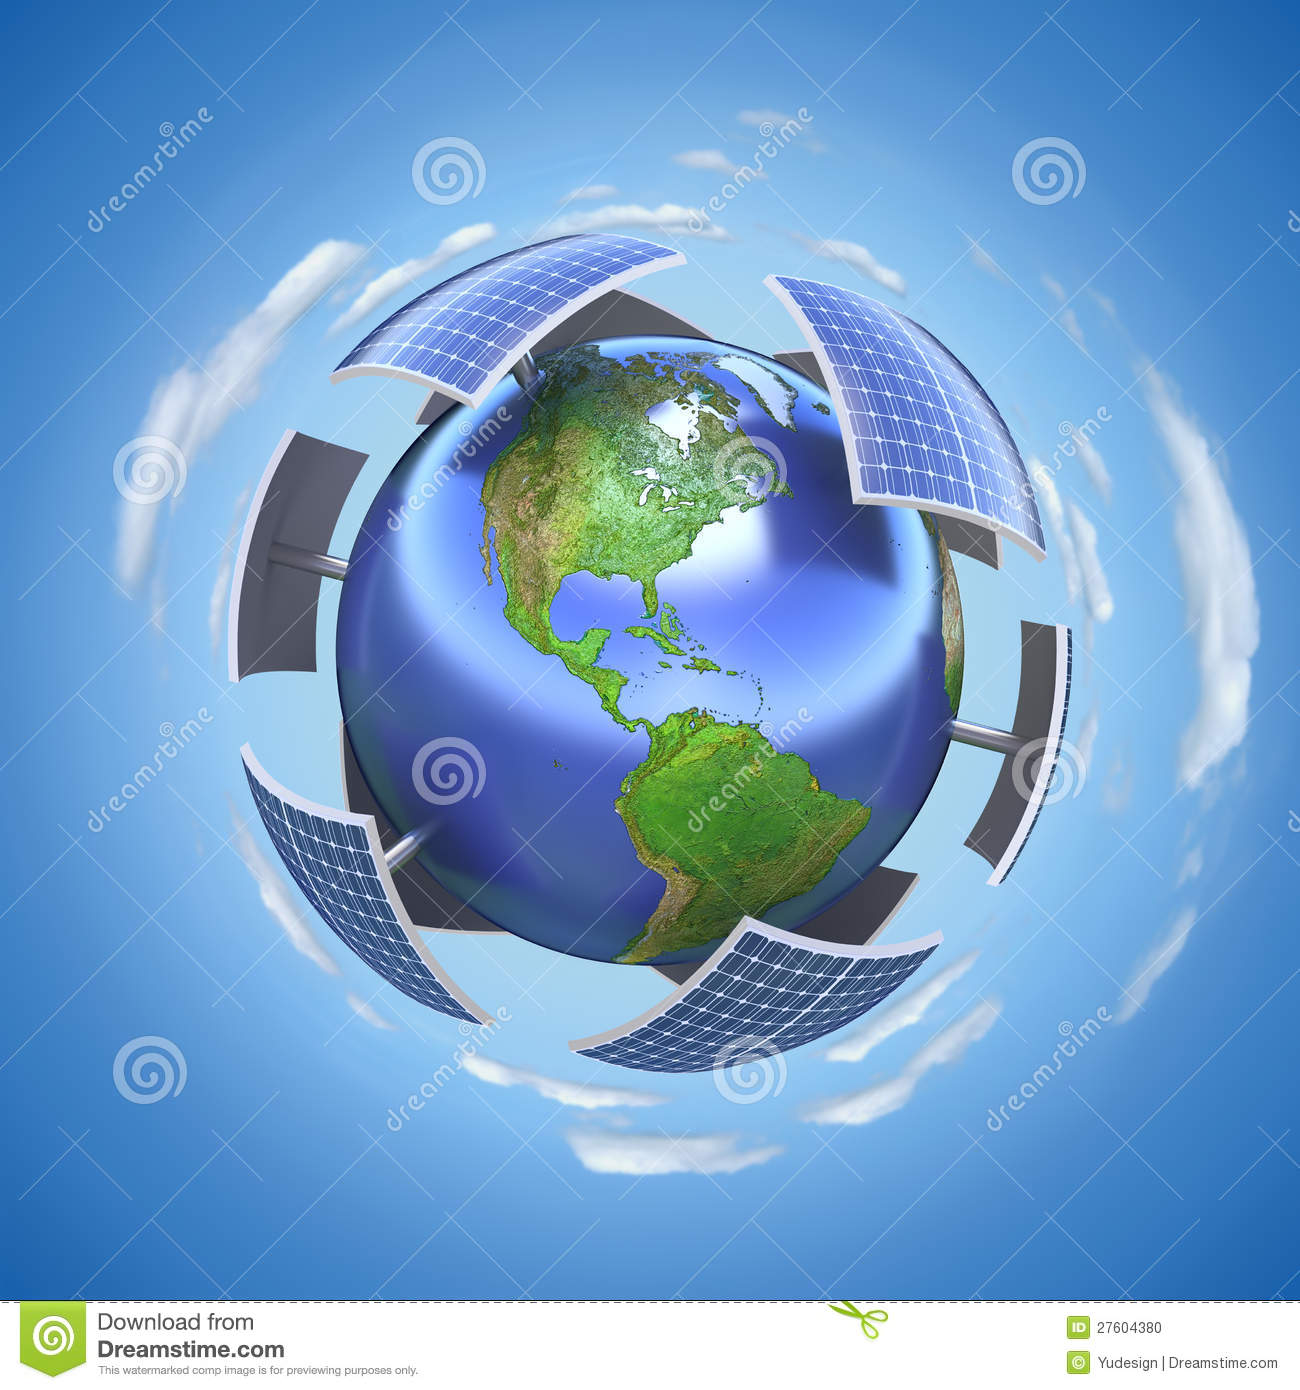 Solar Energy Concept Stock Photo - Image: 27604380